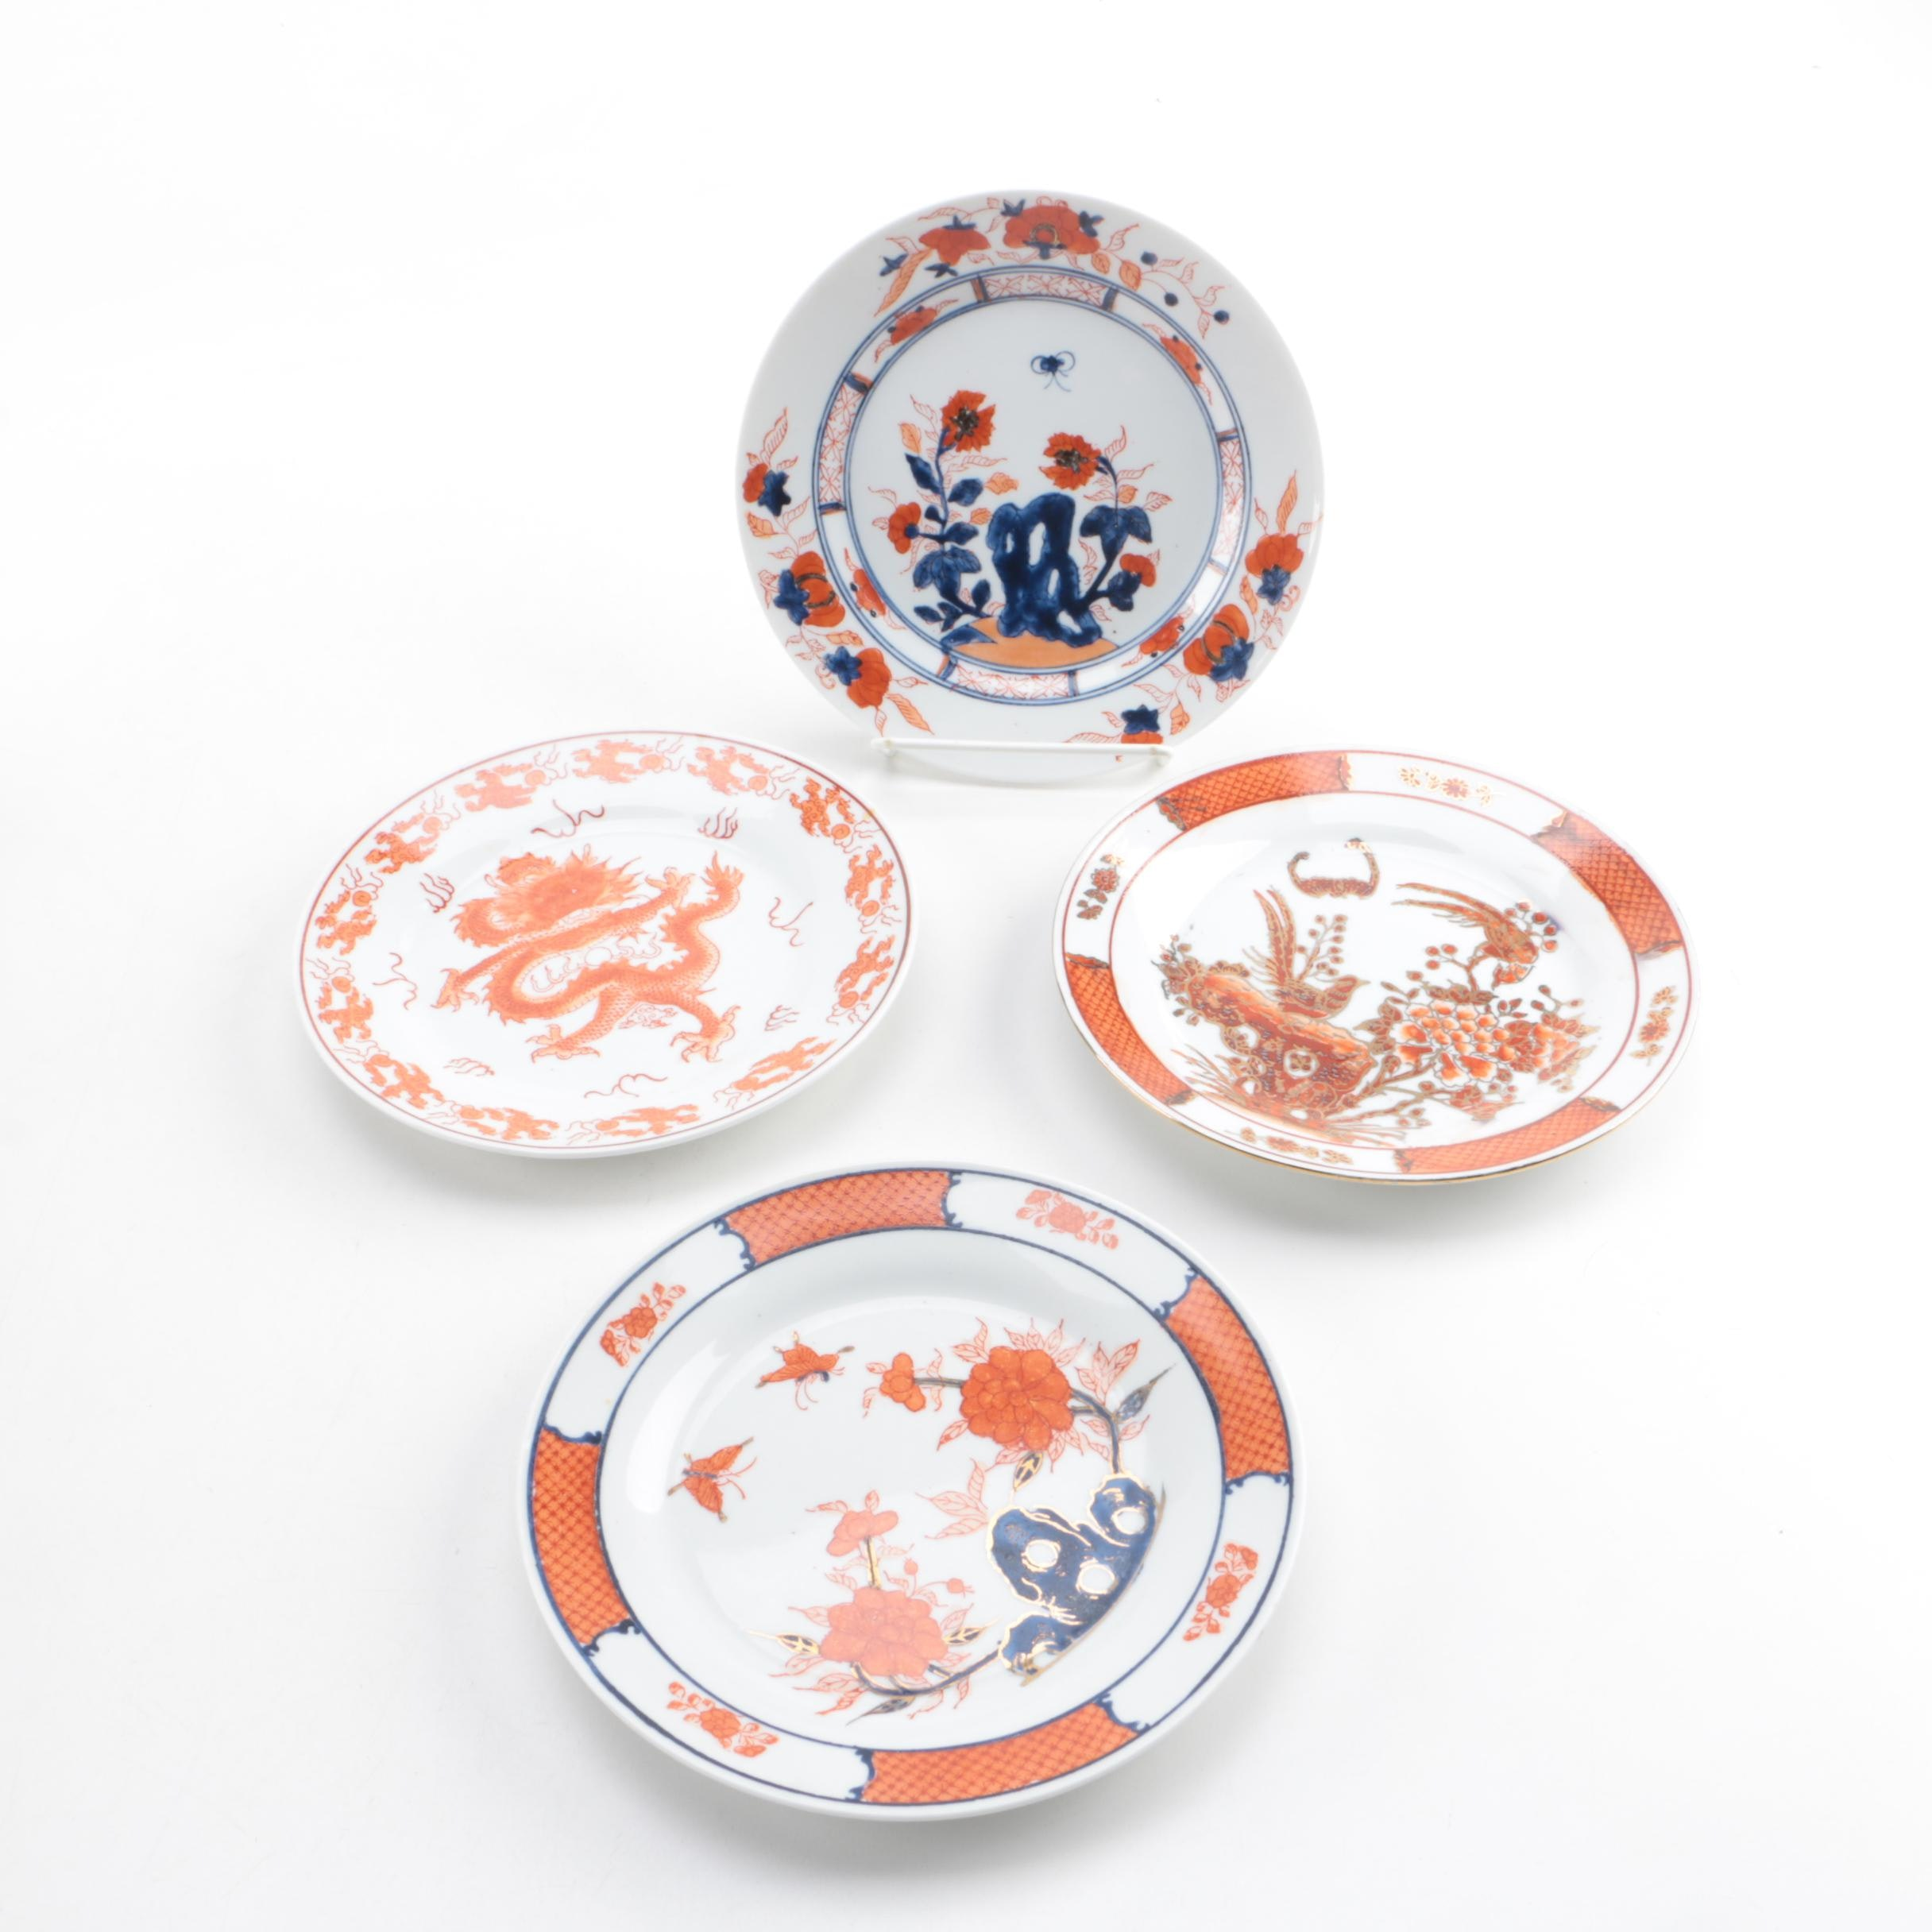 Vintage Hand-painted Chinese Porcelain Plates